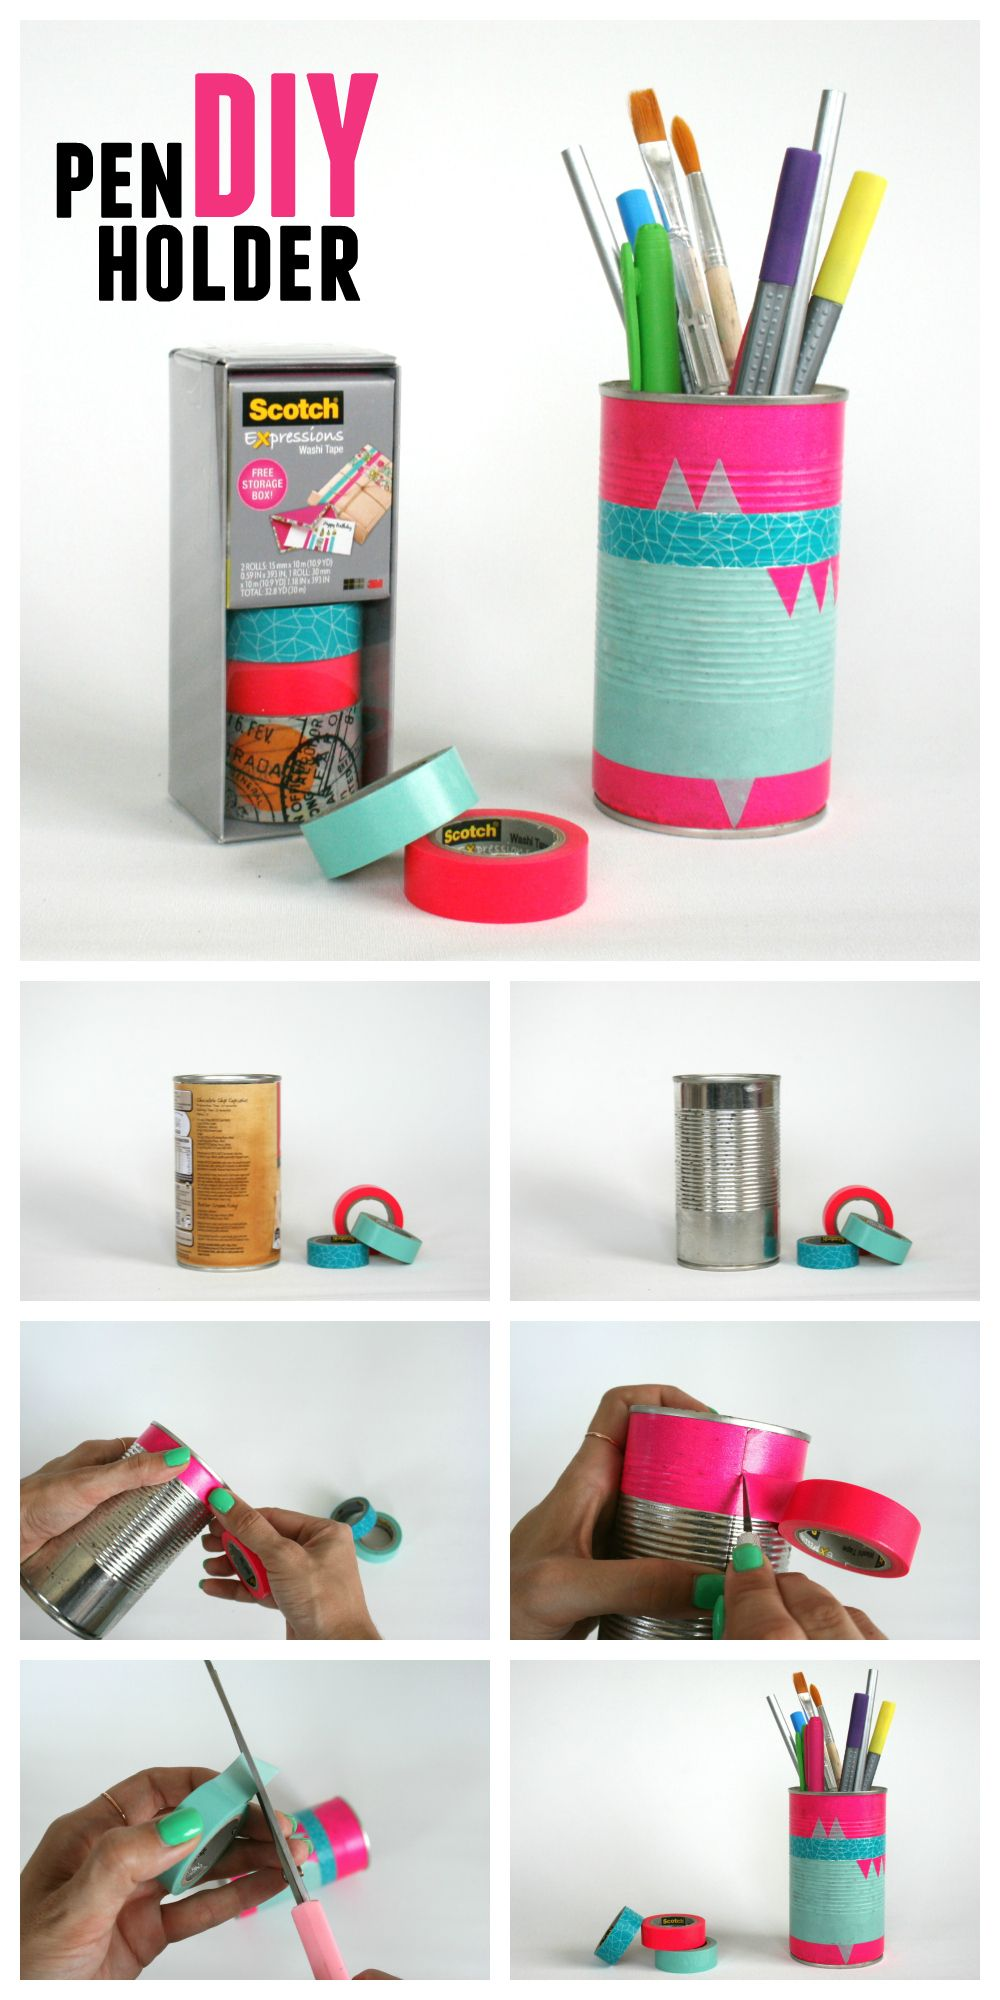 U0027DIY: Pen Holder / Desk Caddy / Pencil Organiser...!u0027 (via Unleash Creative)